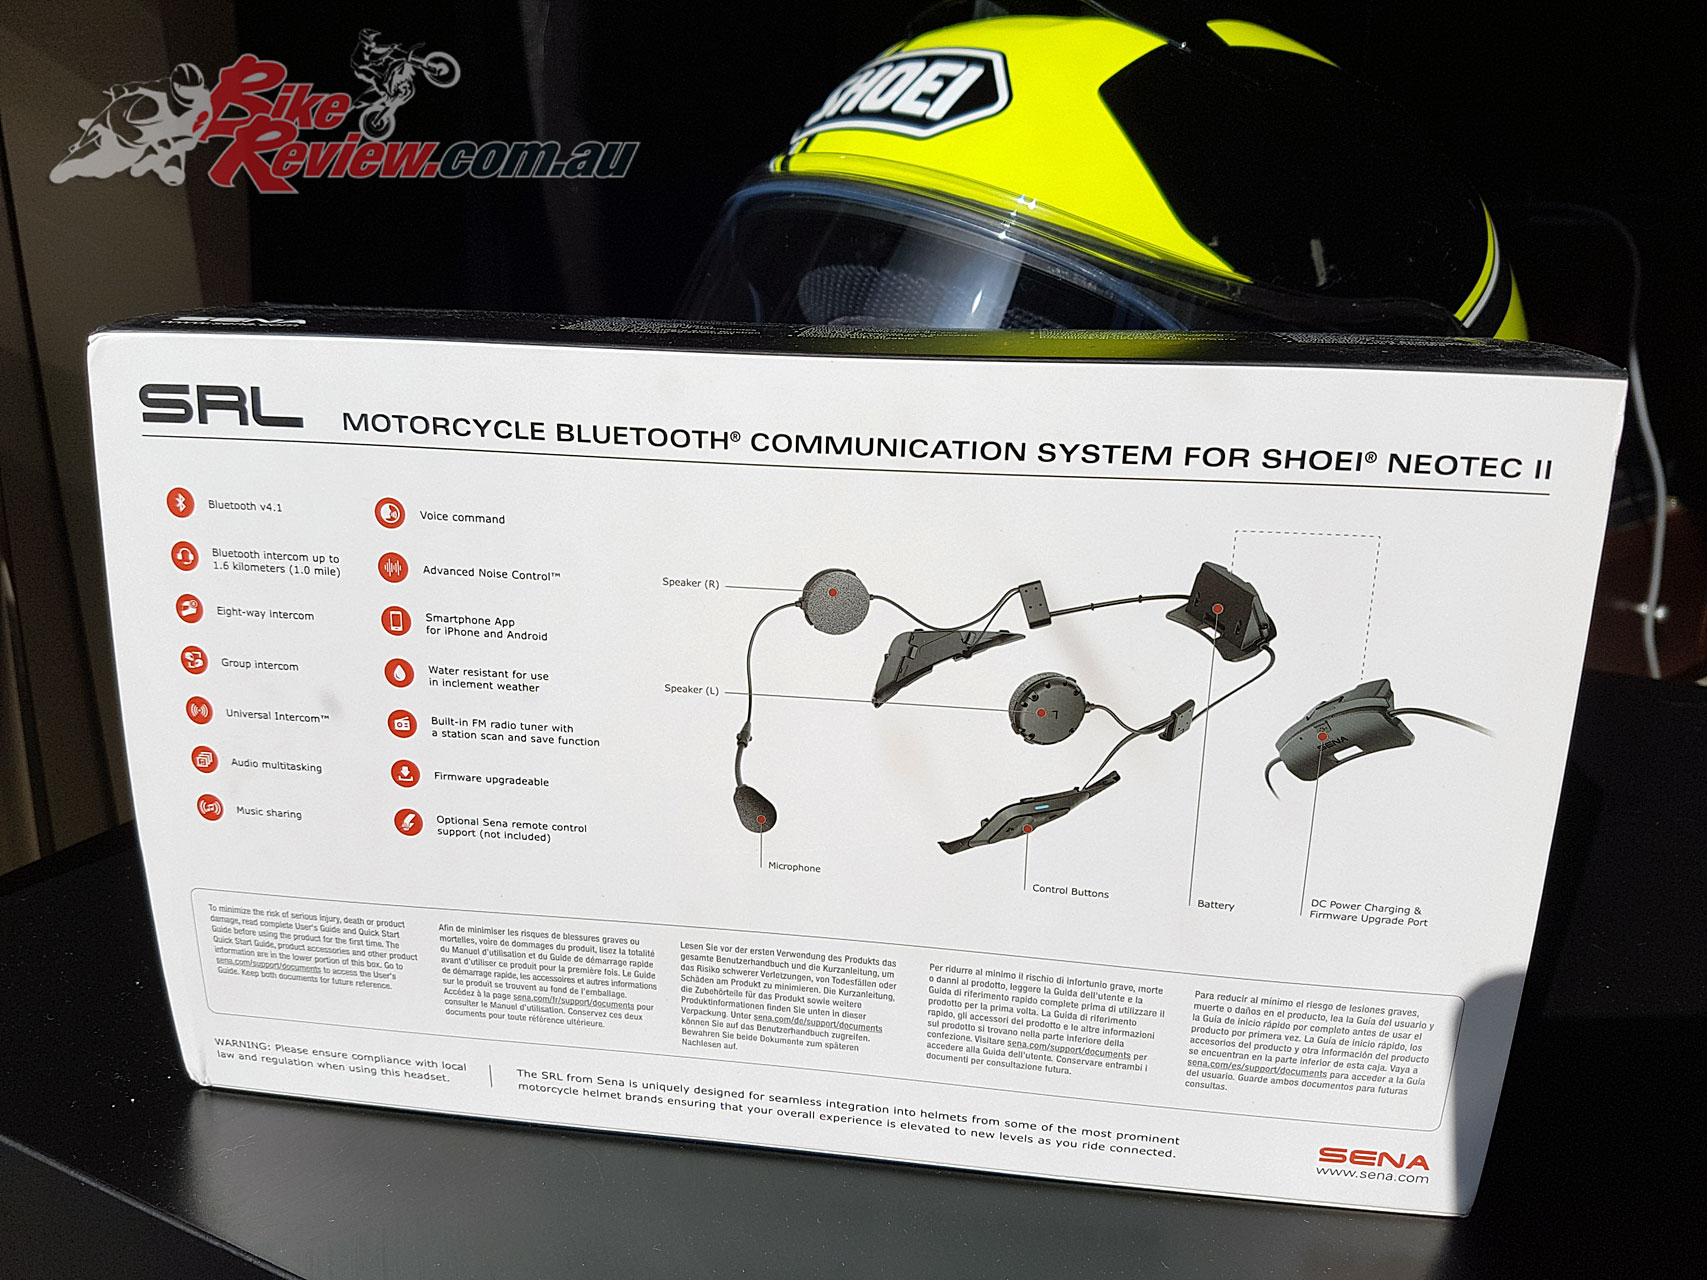 The Sena SRL is designed specifically for the Shoei Neotec II